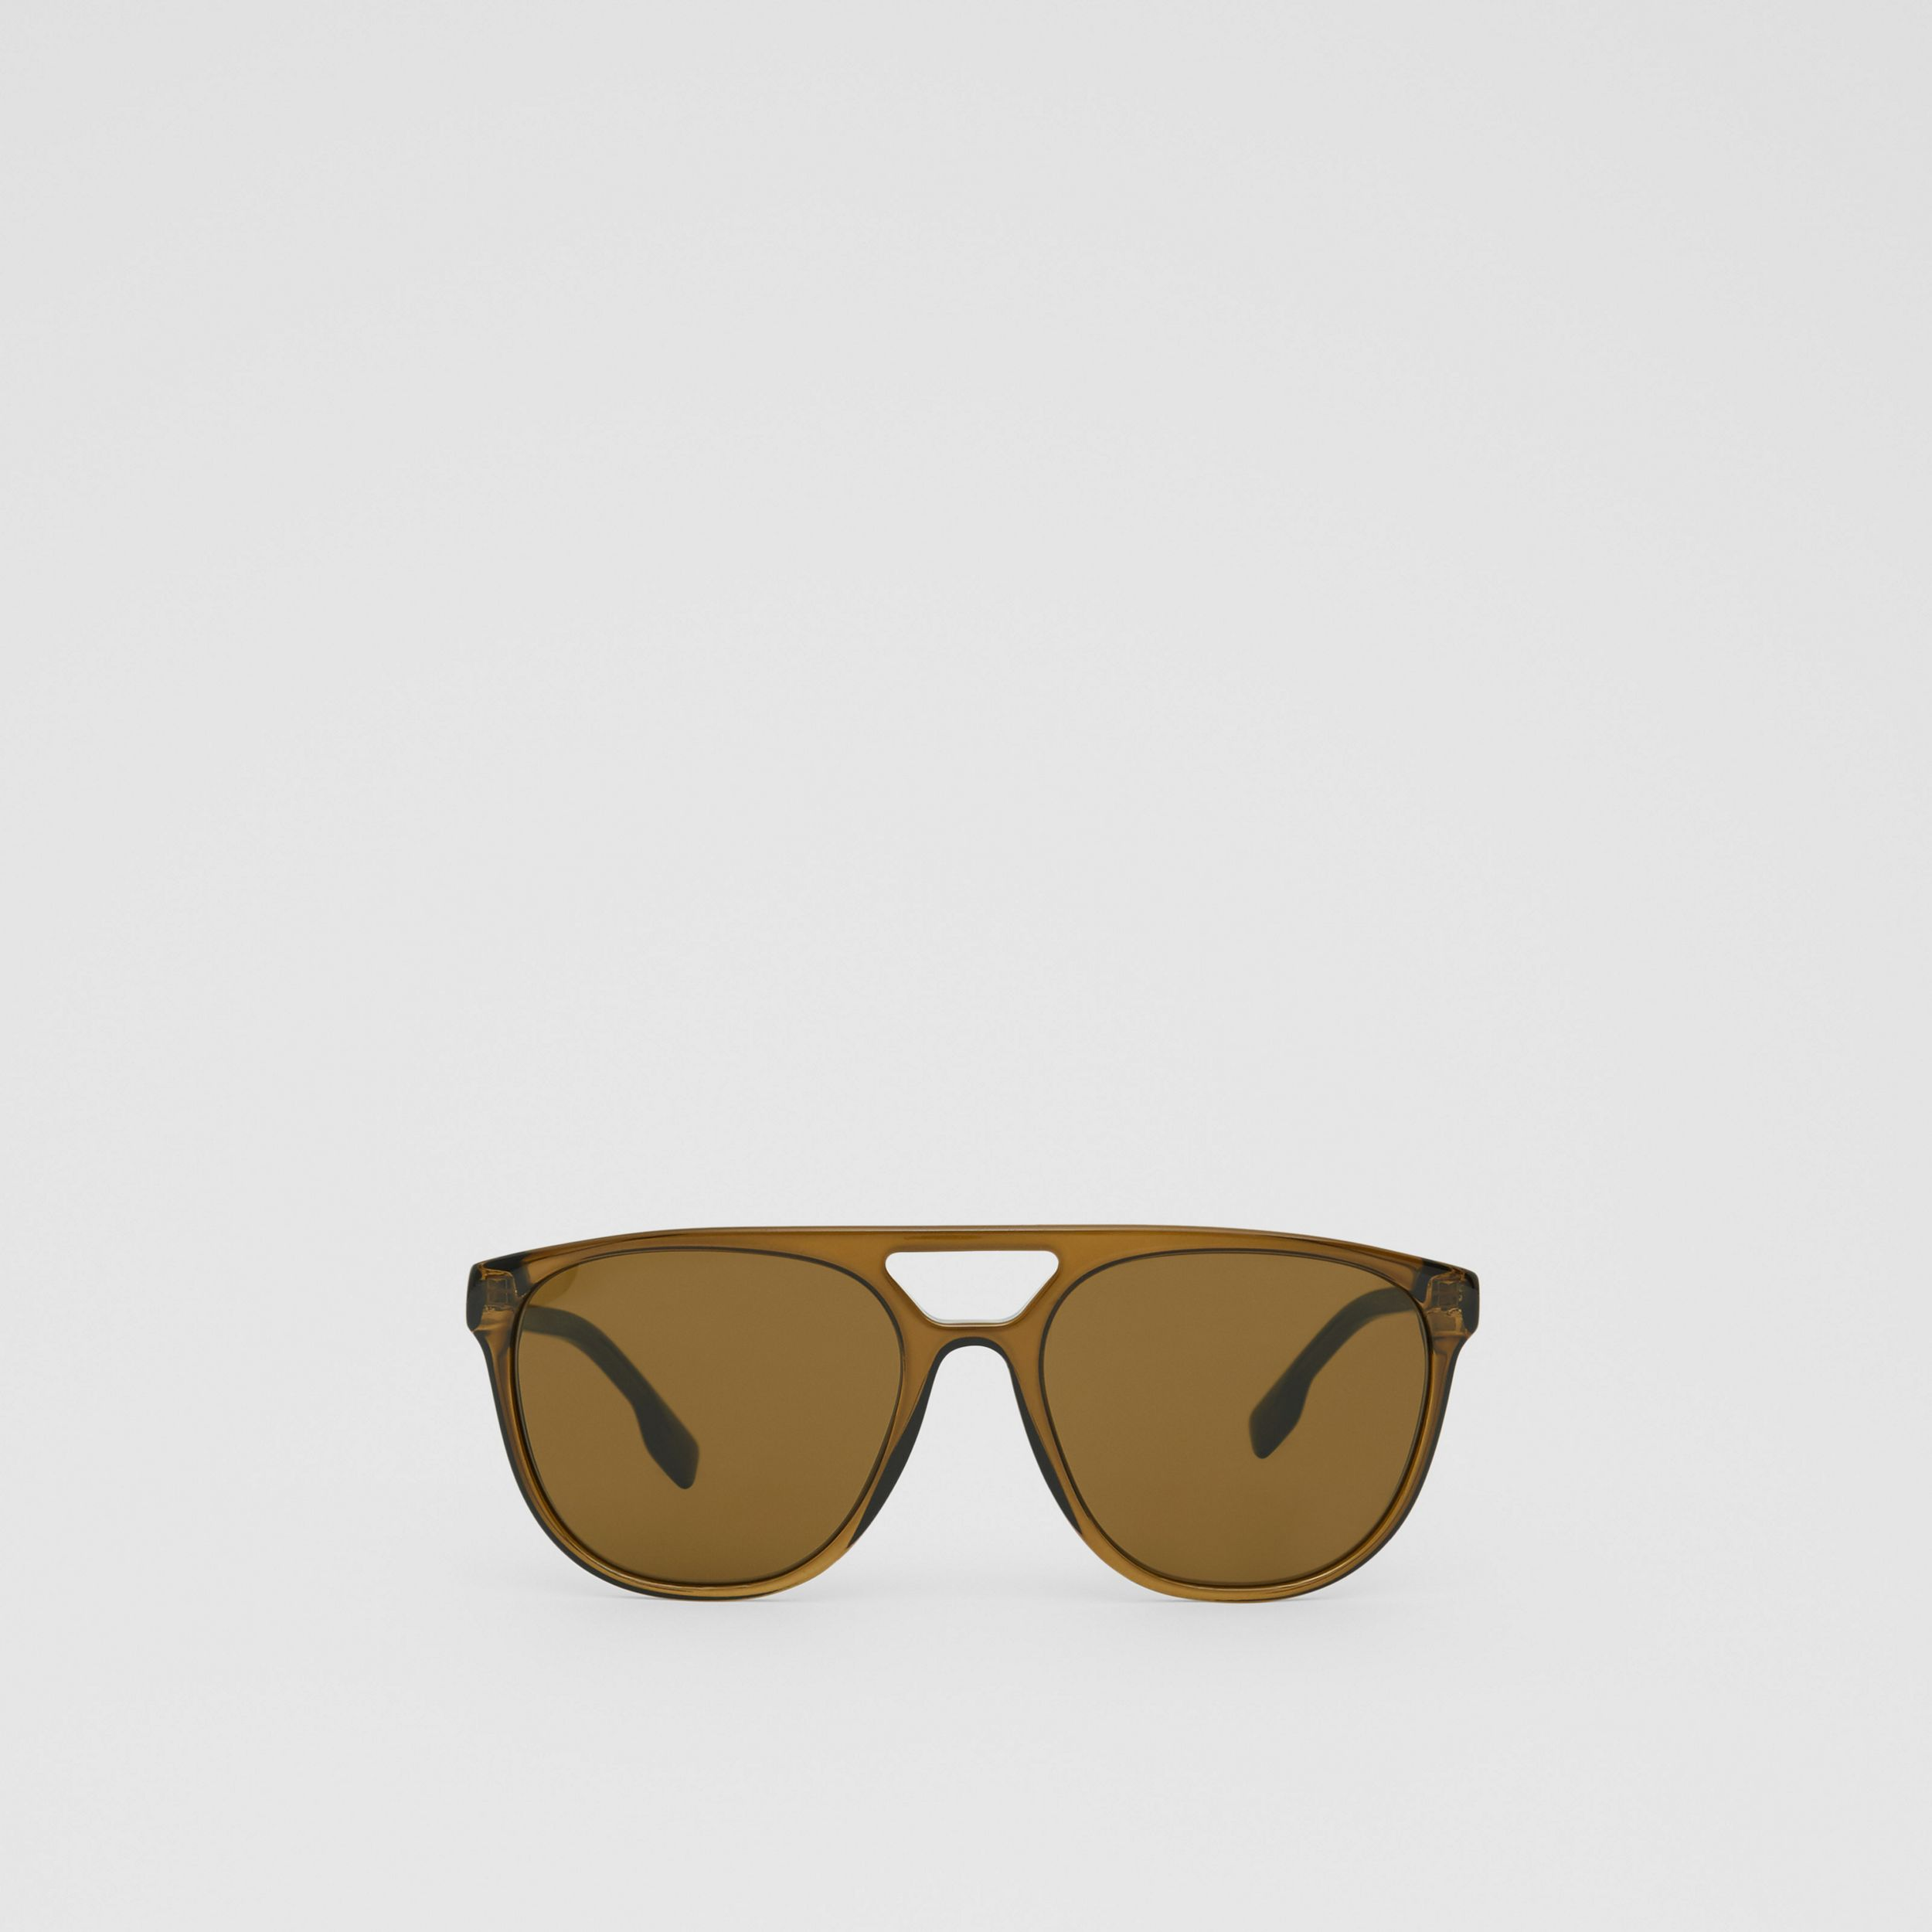 Navigator Sunglasses in Olive Green - Men | Burberry - 1